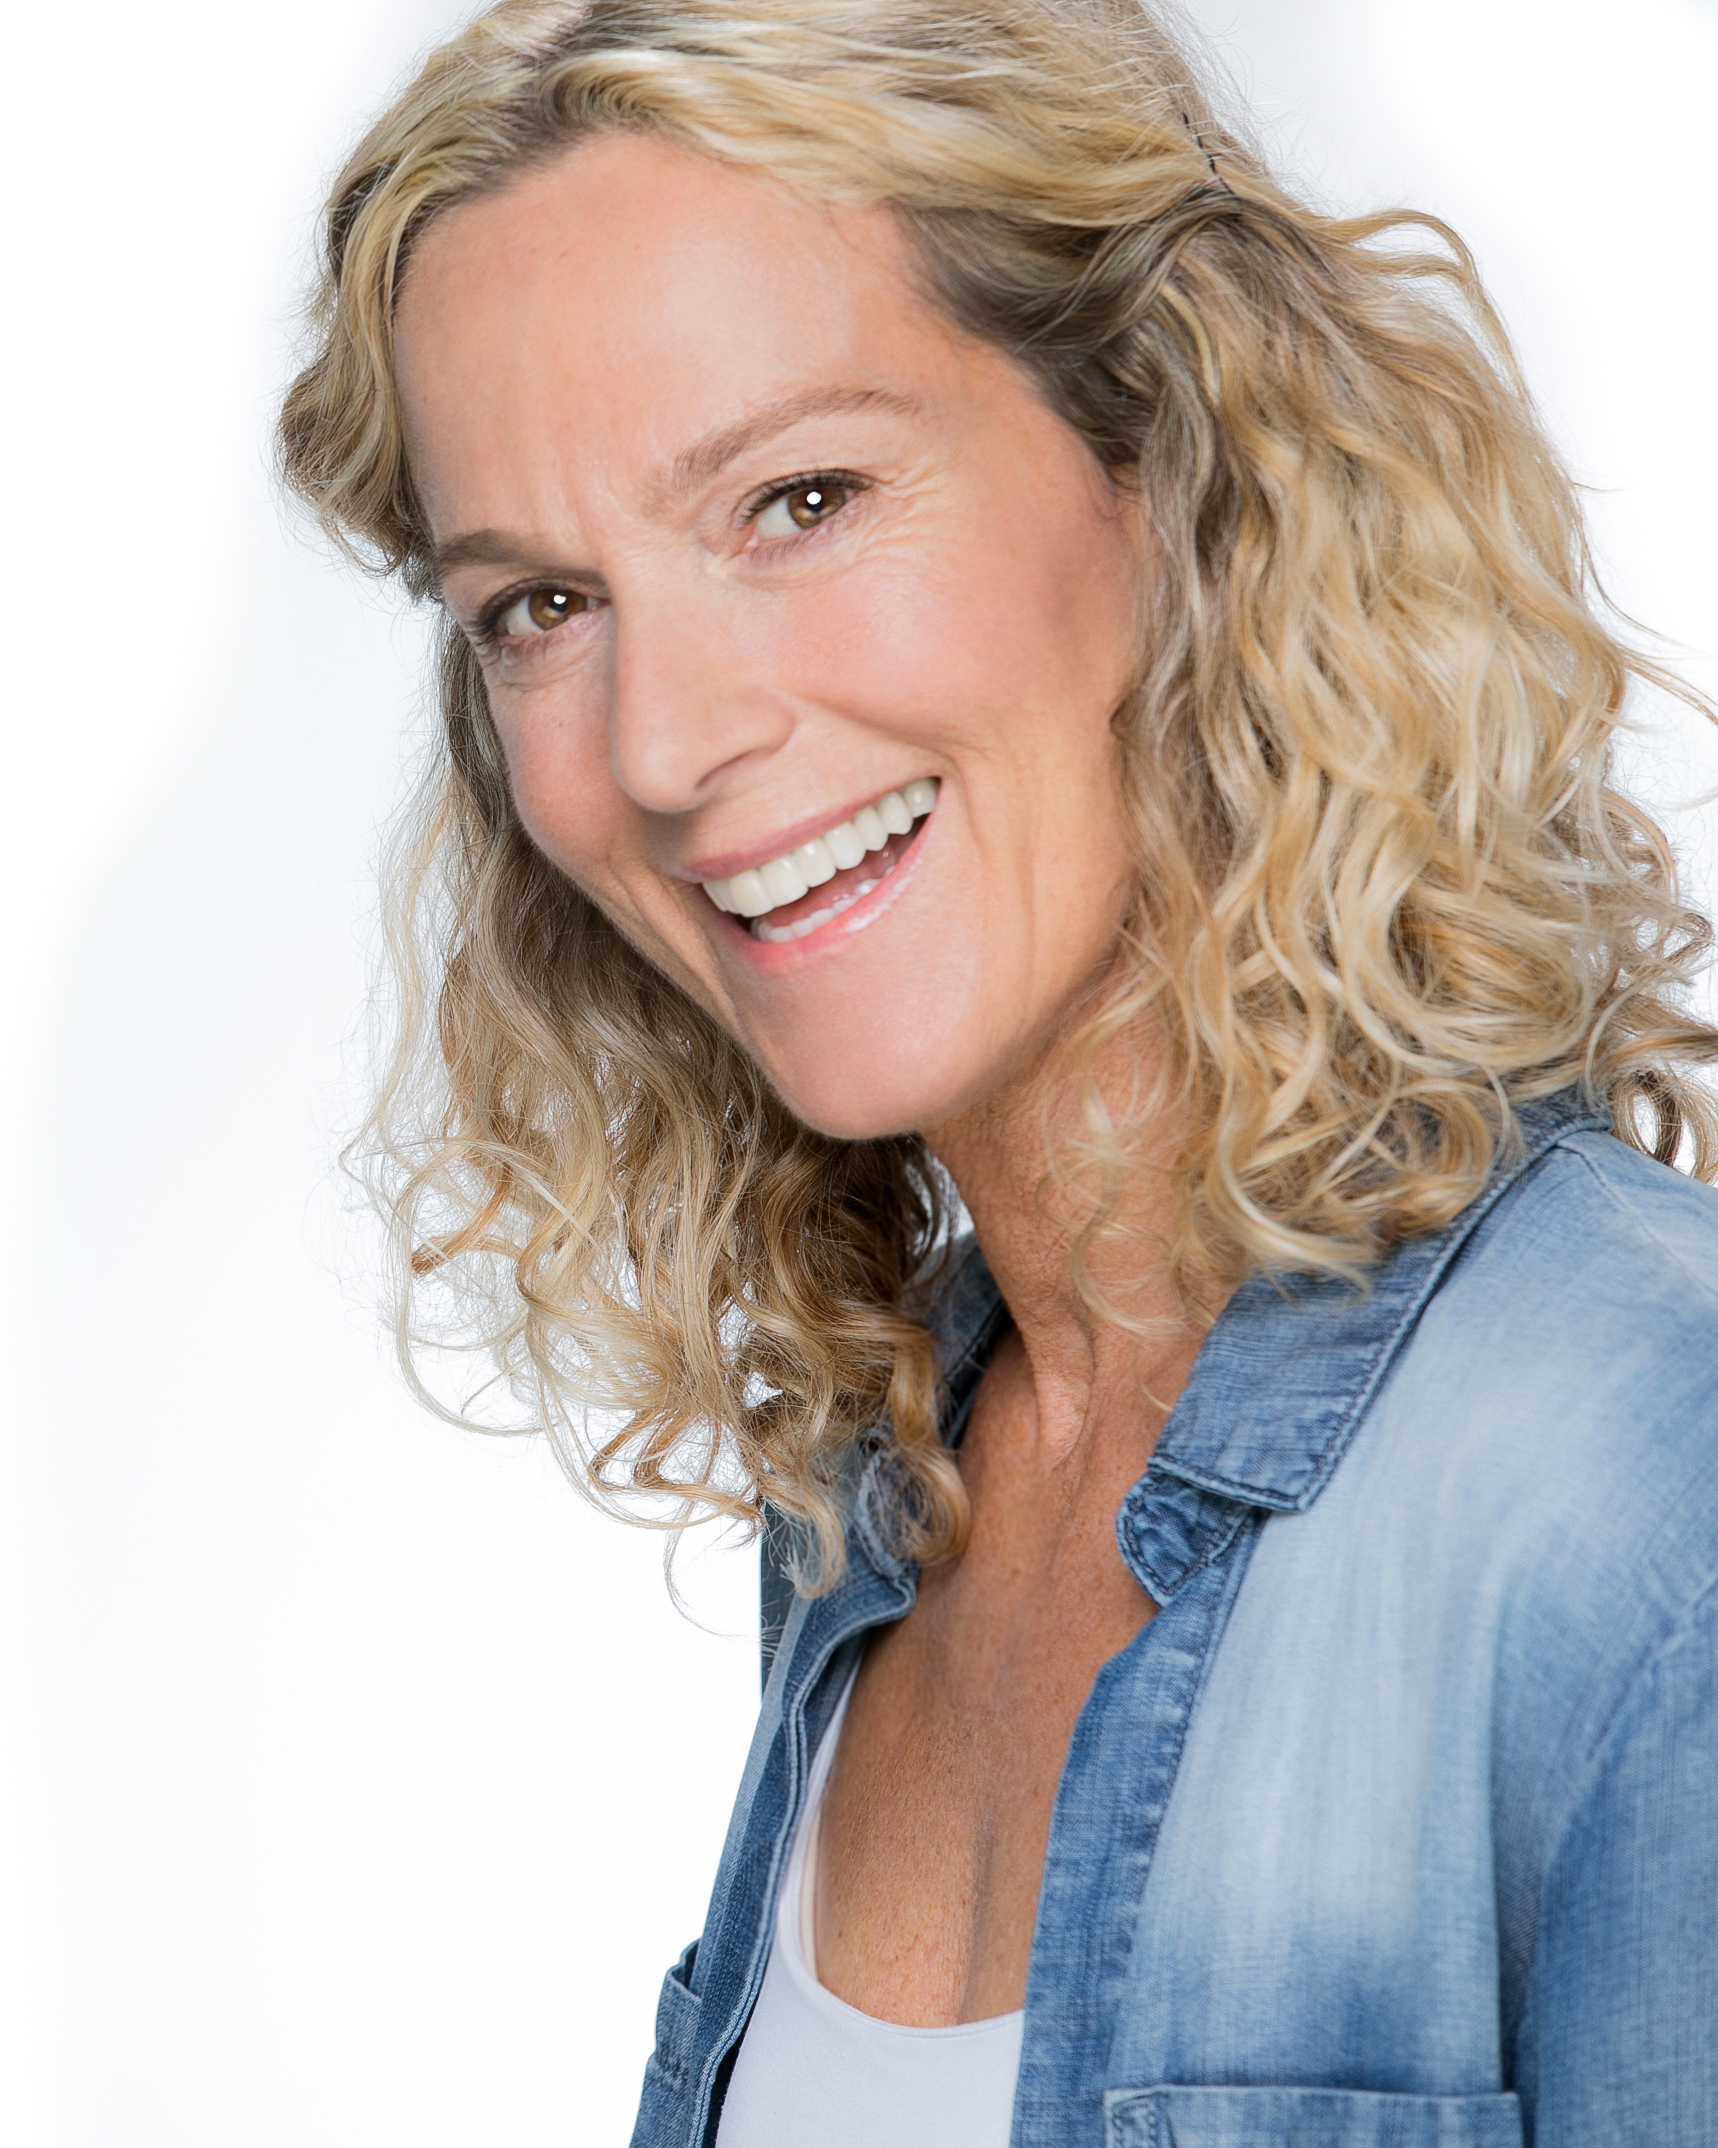 Kim Treacy - Kim is a commercial actress with over twenty years experience.Having trained at Redroofs Theatre School Berkshire for four years Kim spent a further two years studying in Los Angeles at the Van Mar Academy whilst also training with the Stella Adler Conservatory in Hollywood.This gave Kim a wide reach exposure to different training methods and approaches which has contributed to her ongoing success.